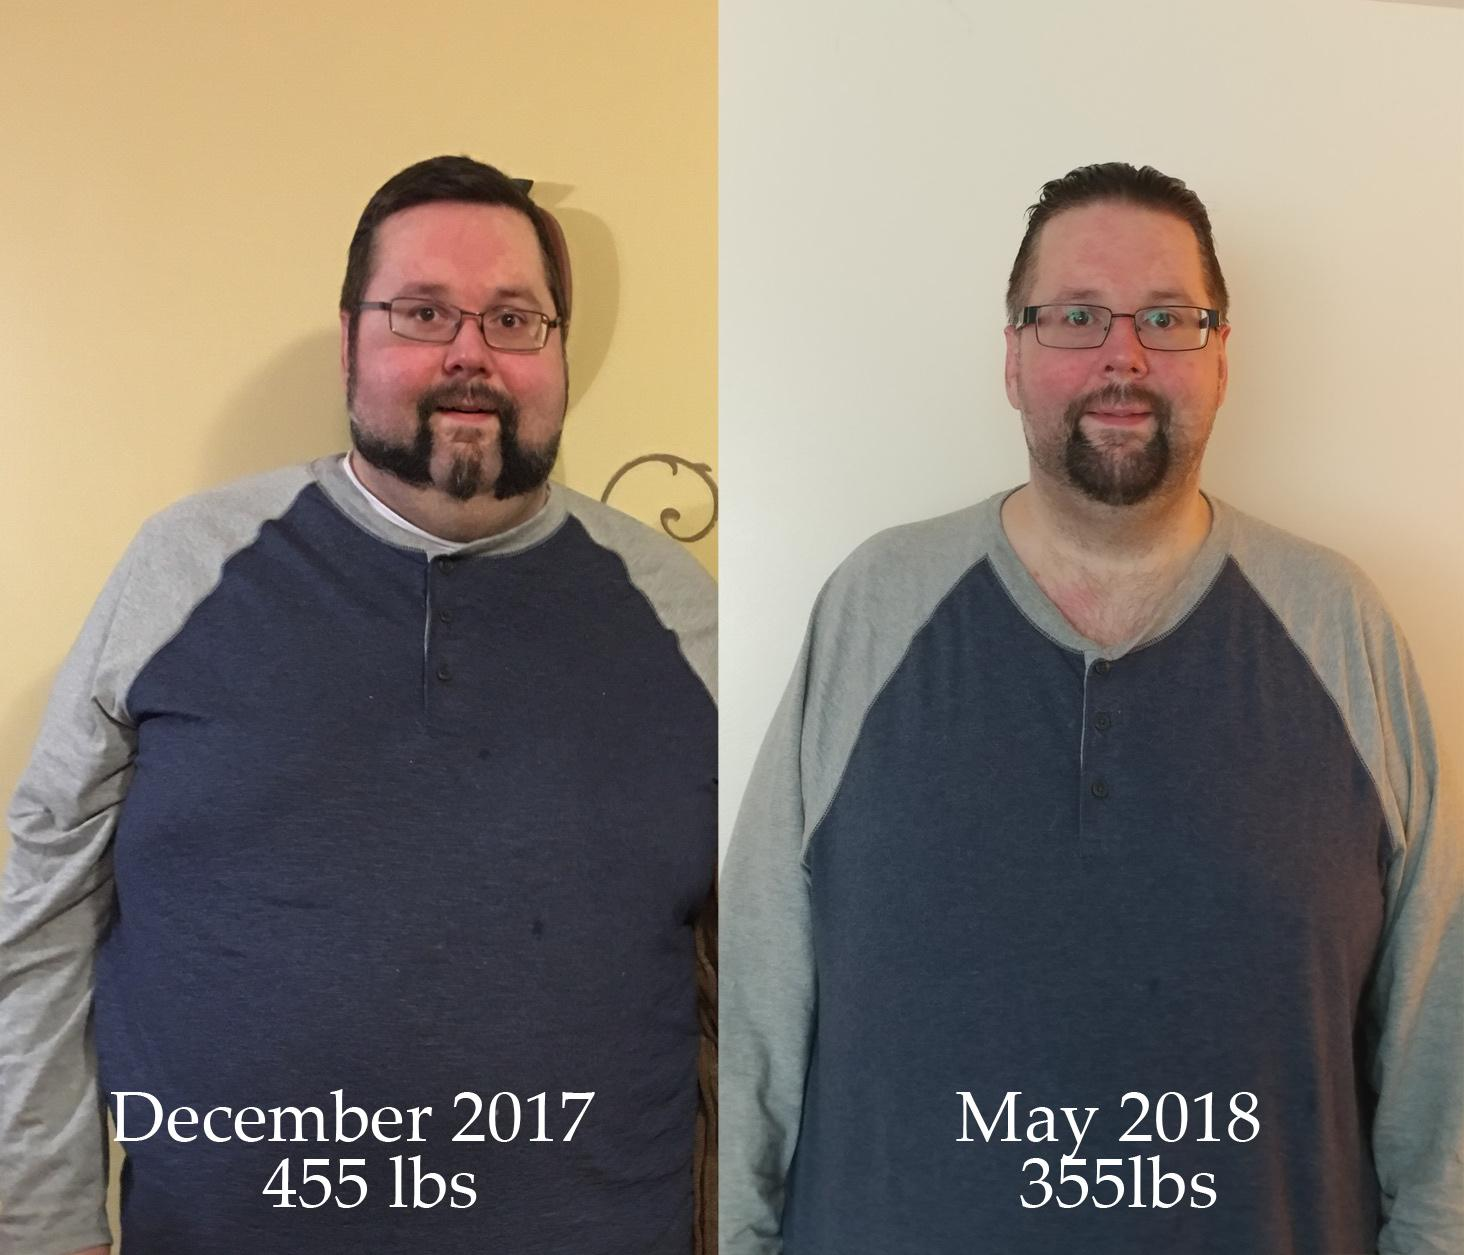 6 feet 3 Male 100 lbs Weight Loss Before and After 455 lbs to 355 lbs